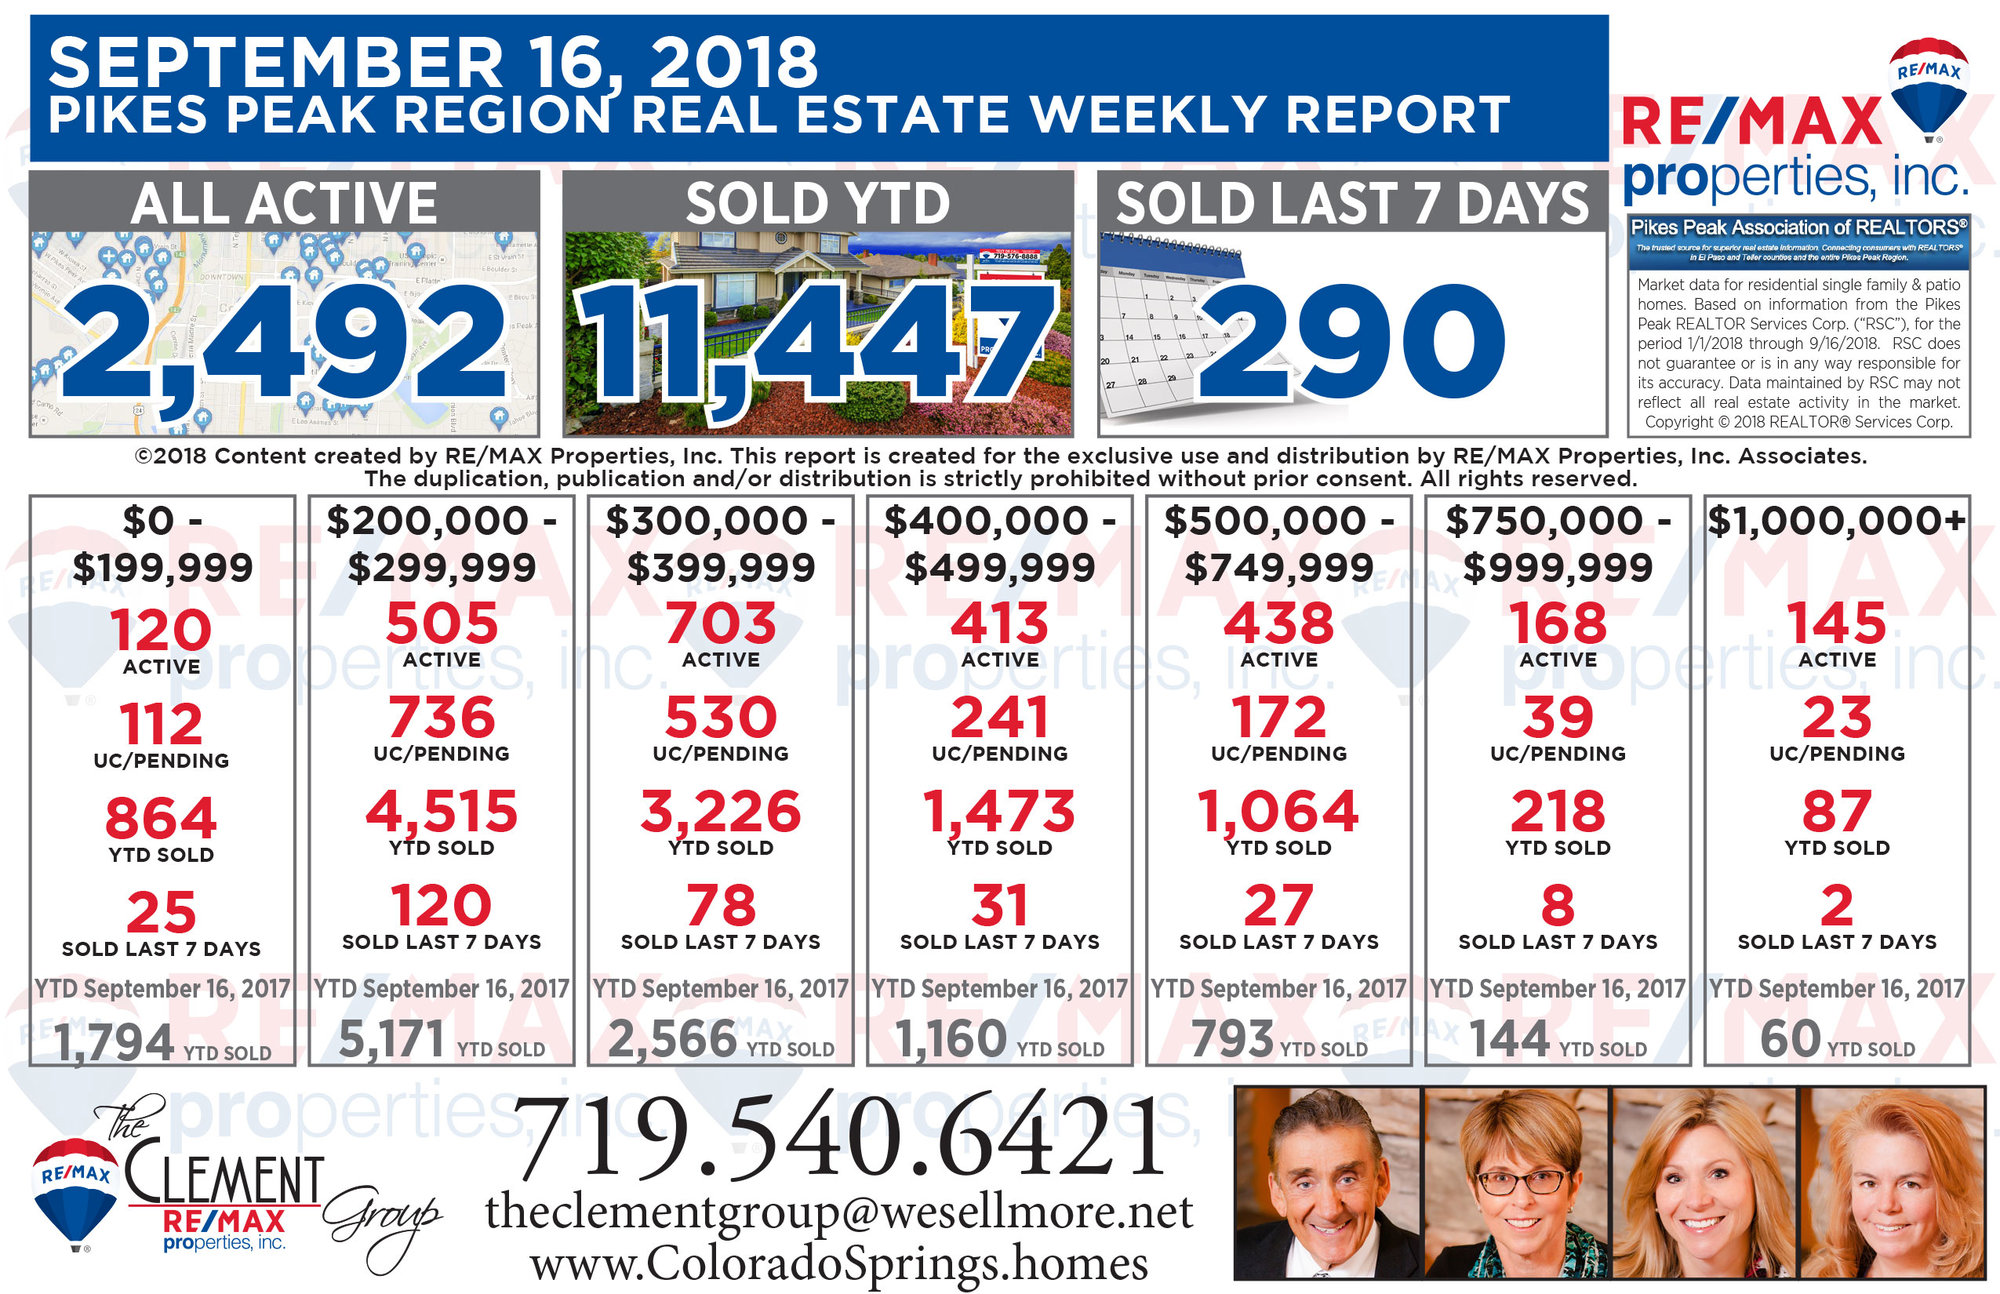 Colorado Springs Real Estate Market Weekly Update - September 16, 2018